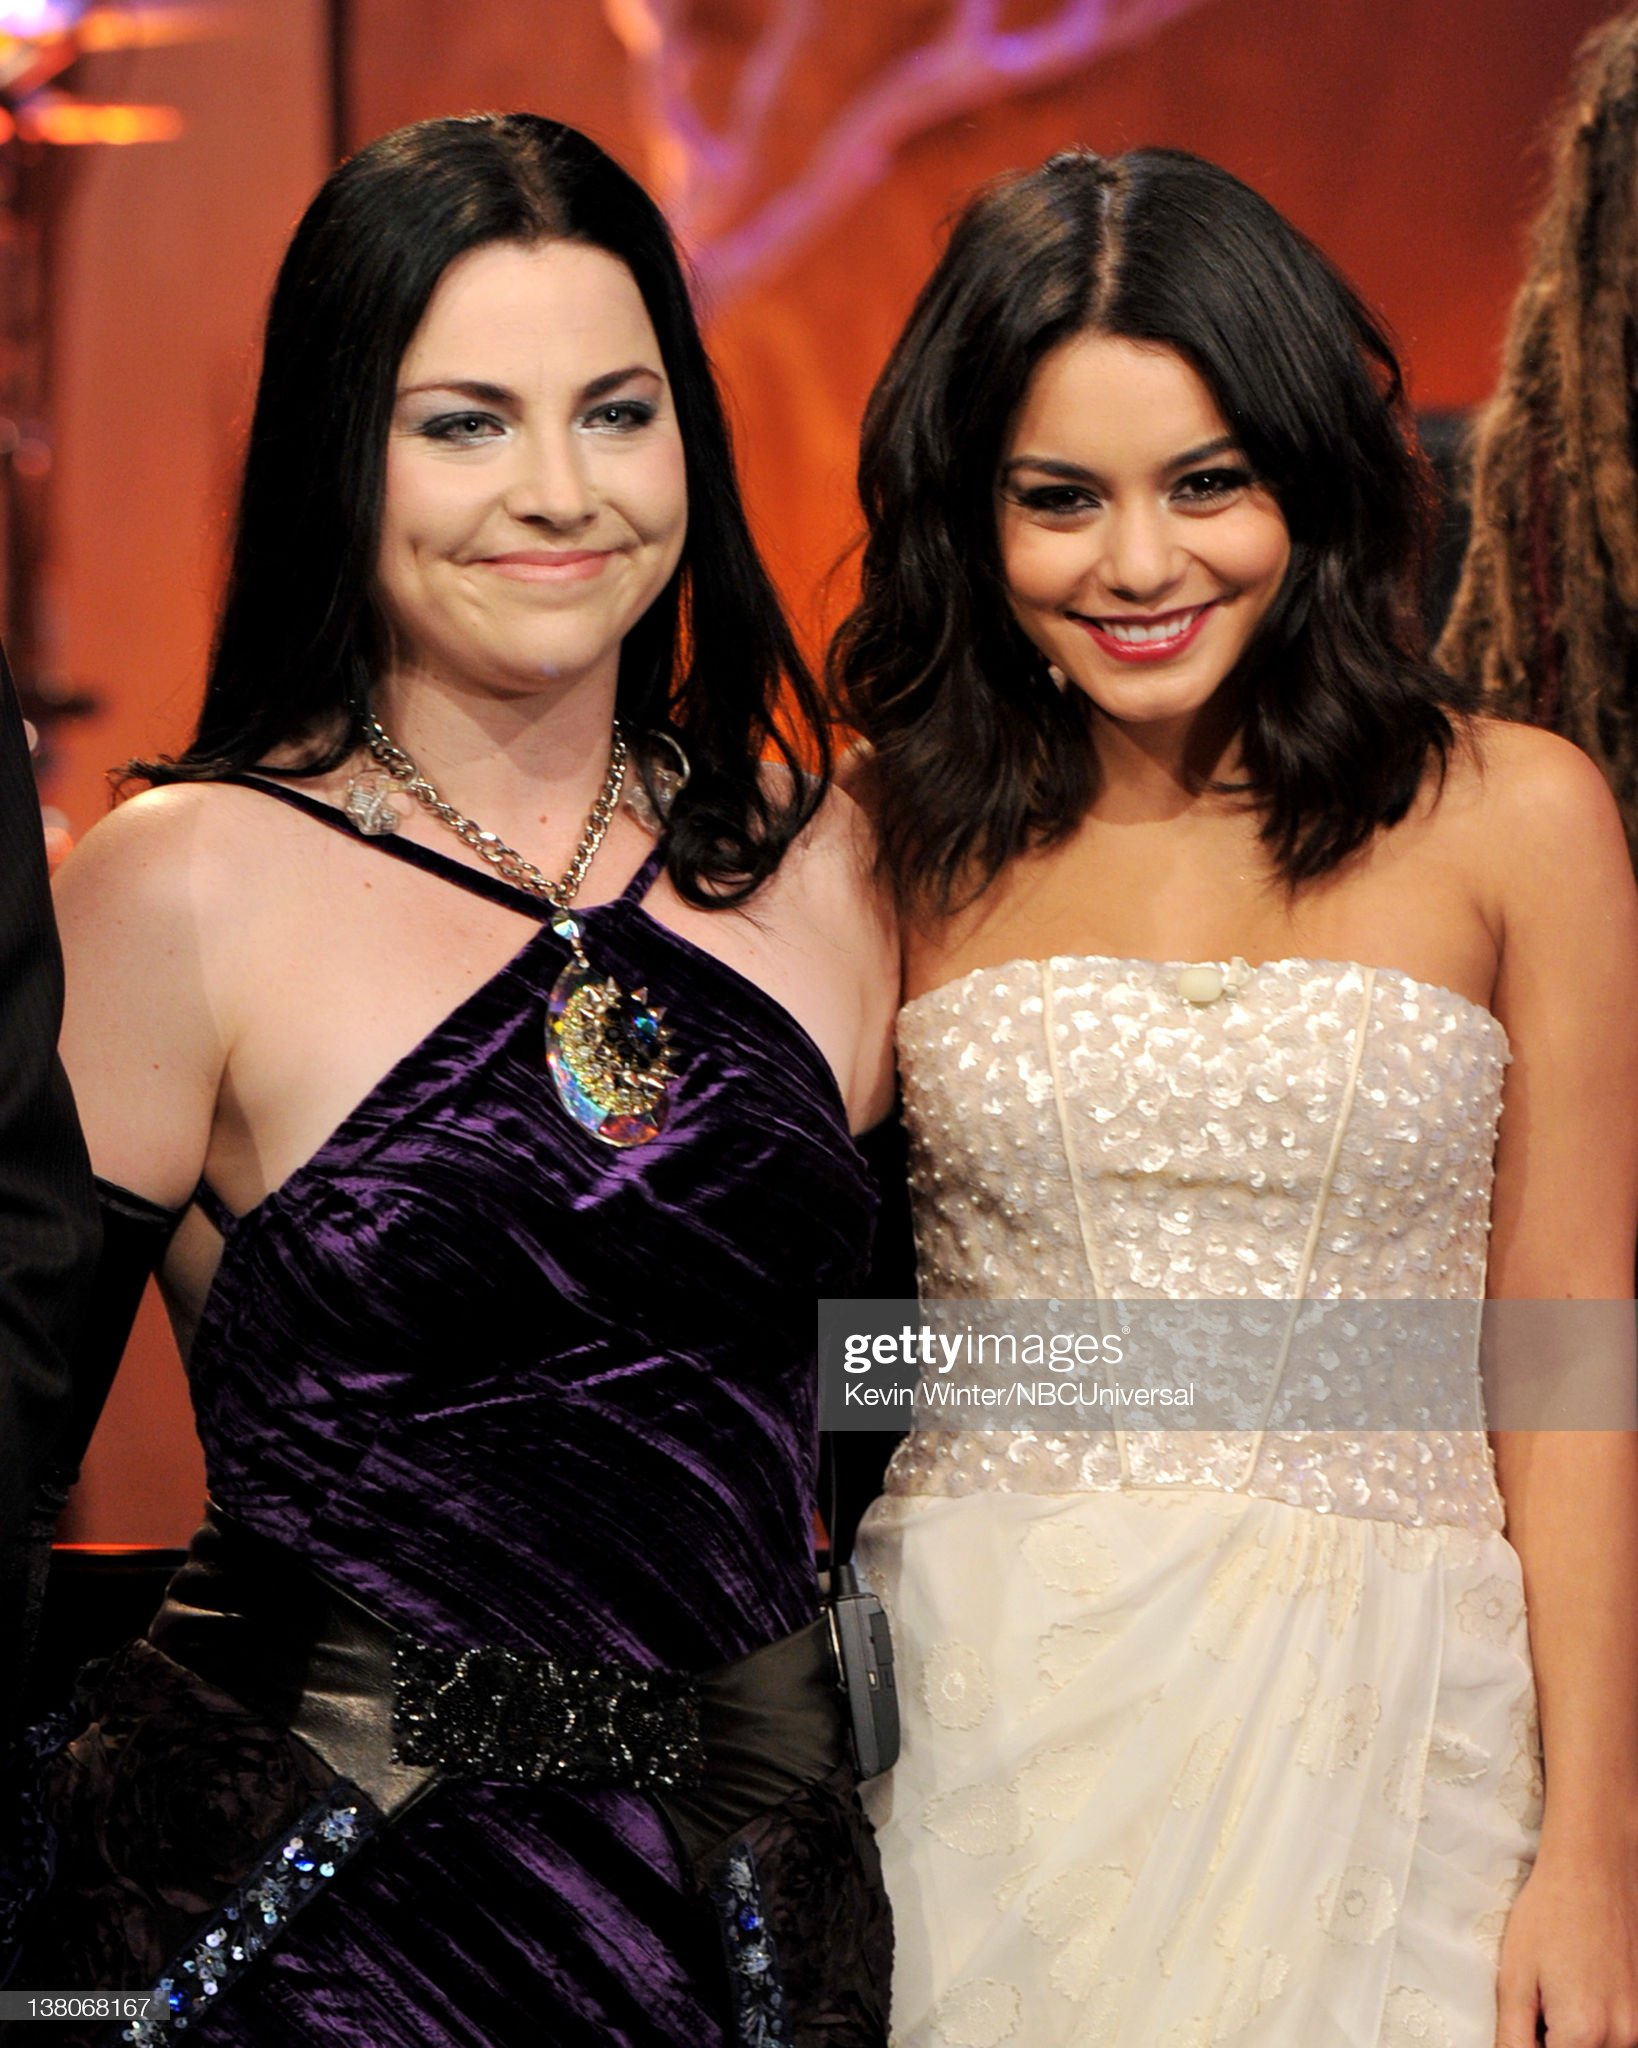 ¿Cuánto mide Amy Lee? - Altura - Real height Singer-amy-lee-of-evanescence-and-actress-vanessa-hudgens-appear-on-picture-id138068167?s=2048x2048